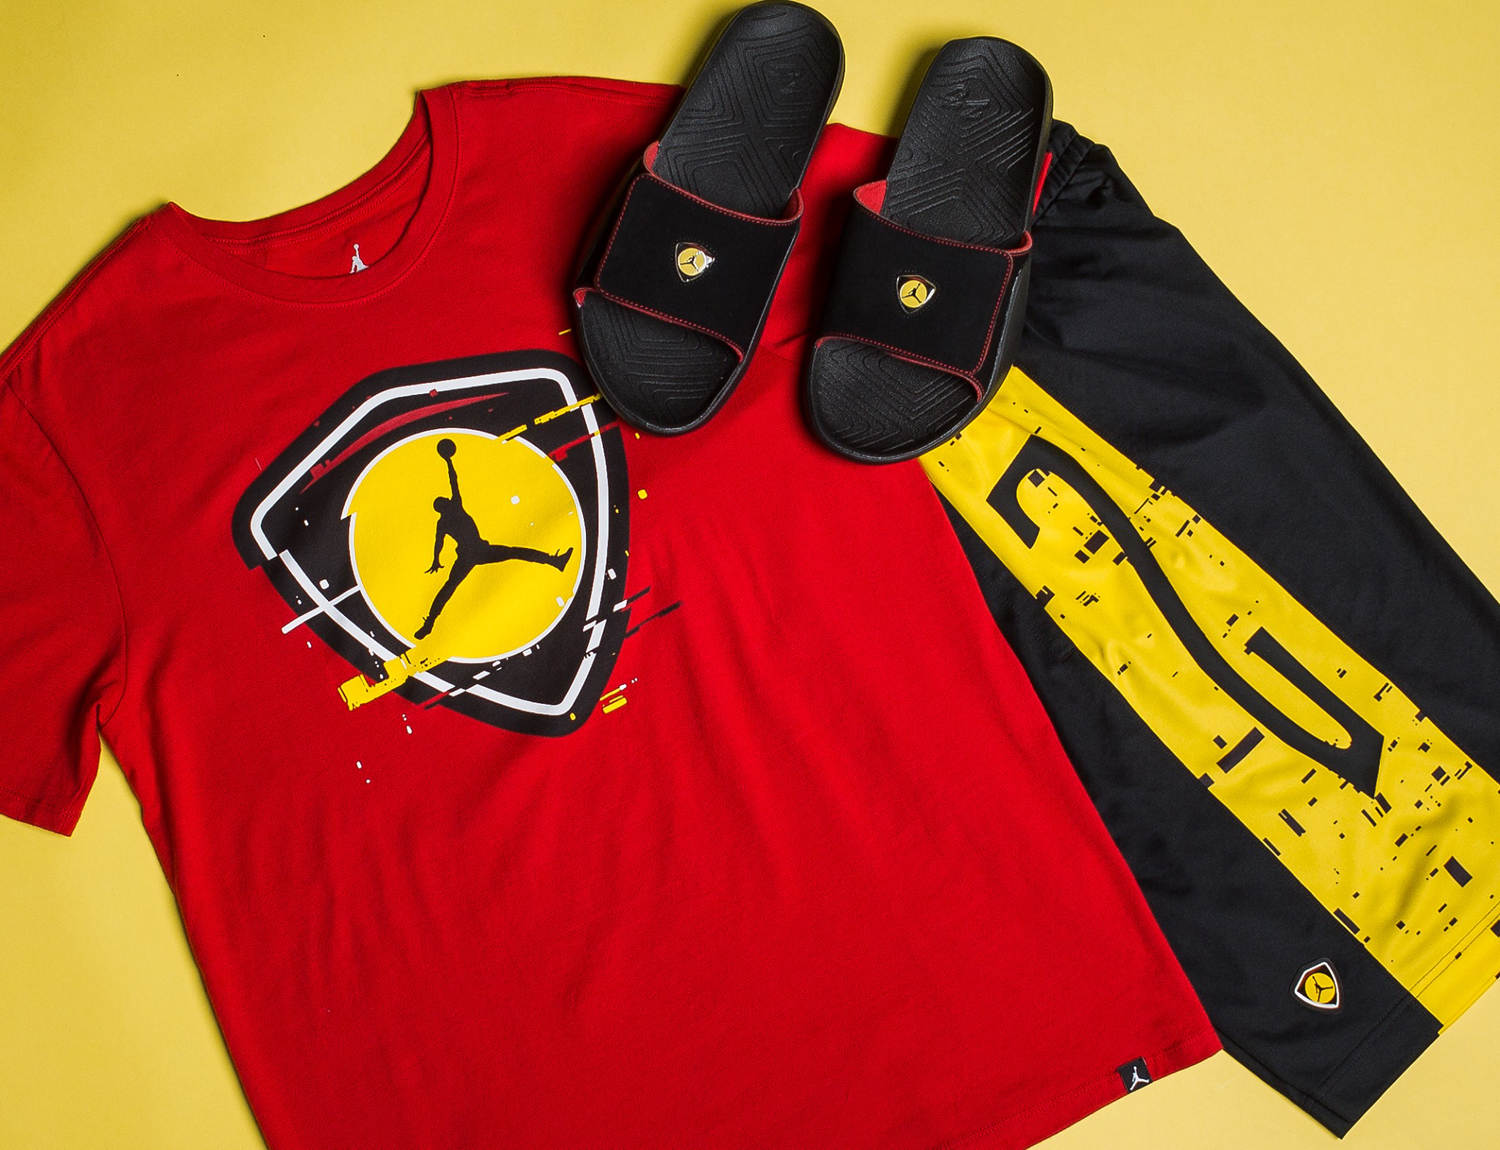 air-jordan-14-last-shot-clothing-match-1